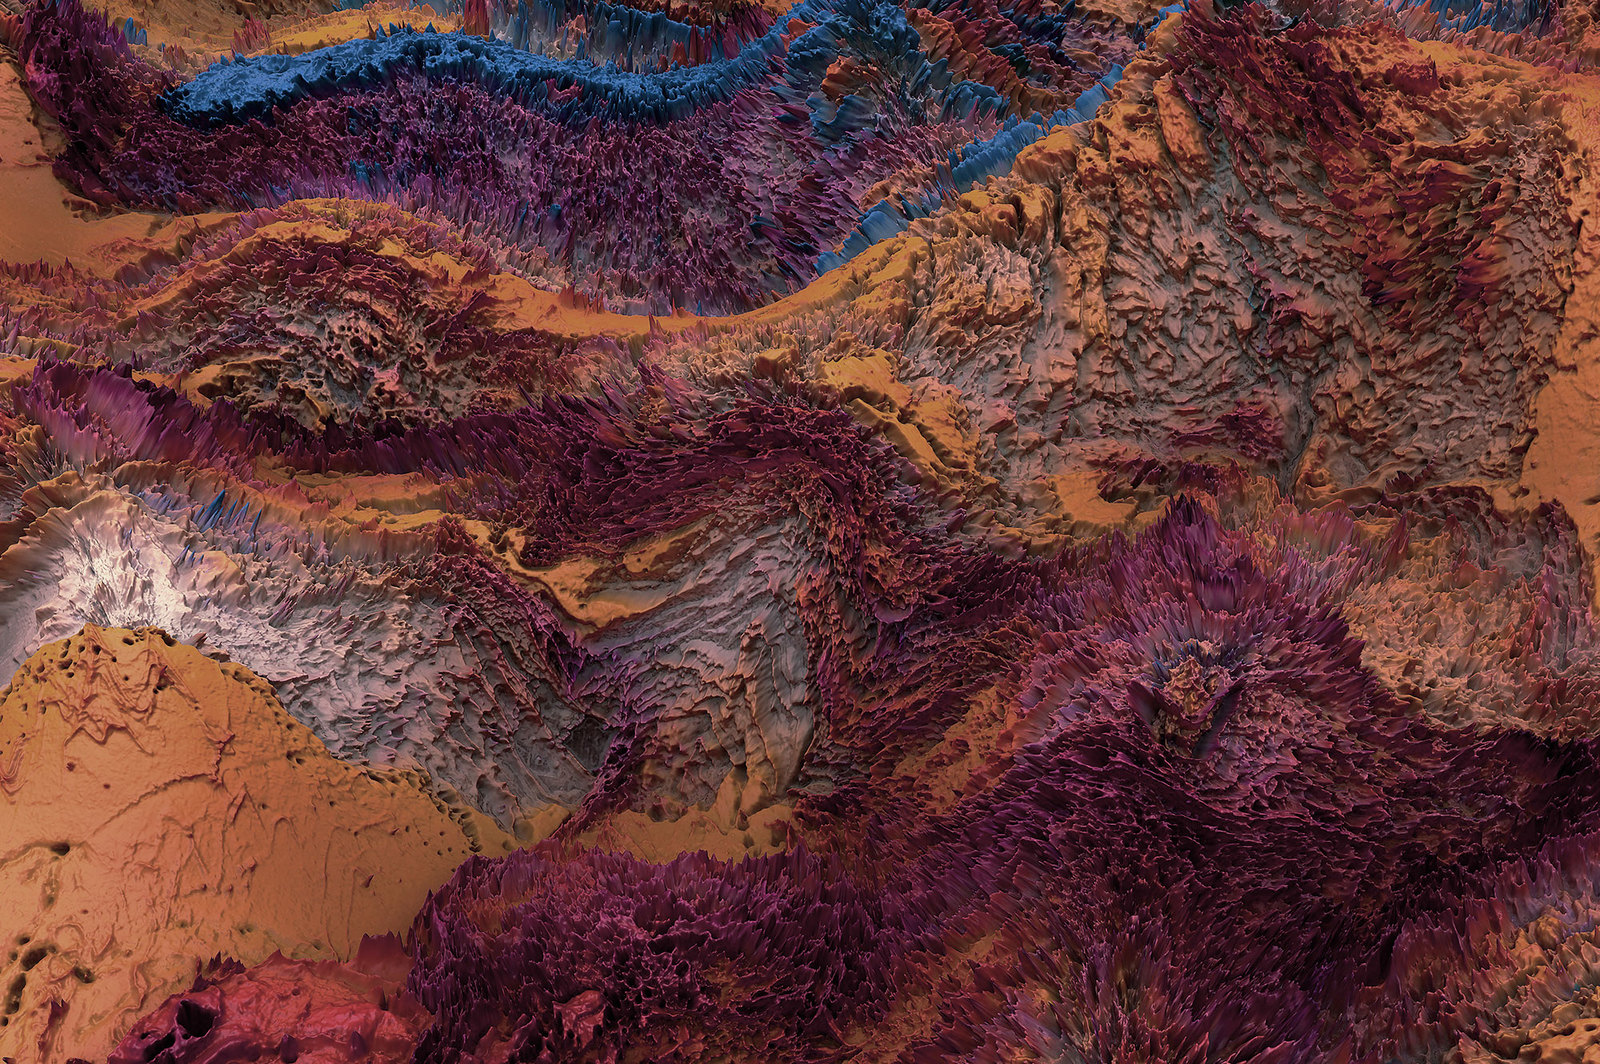 Terrain, Vol. 2: Abstract 3D Landscapes